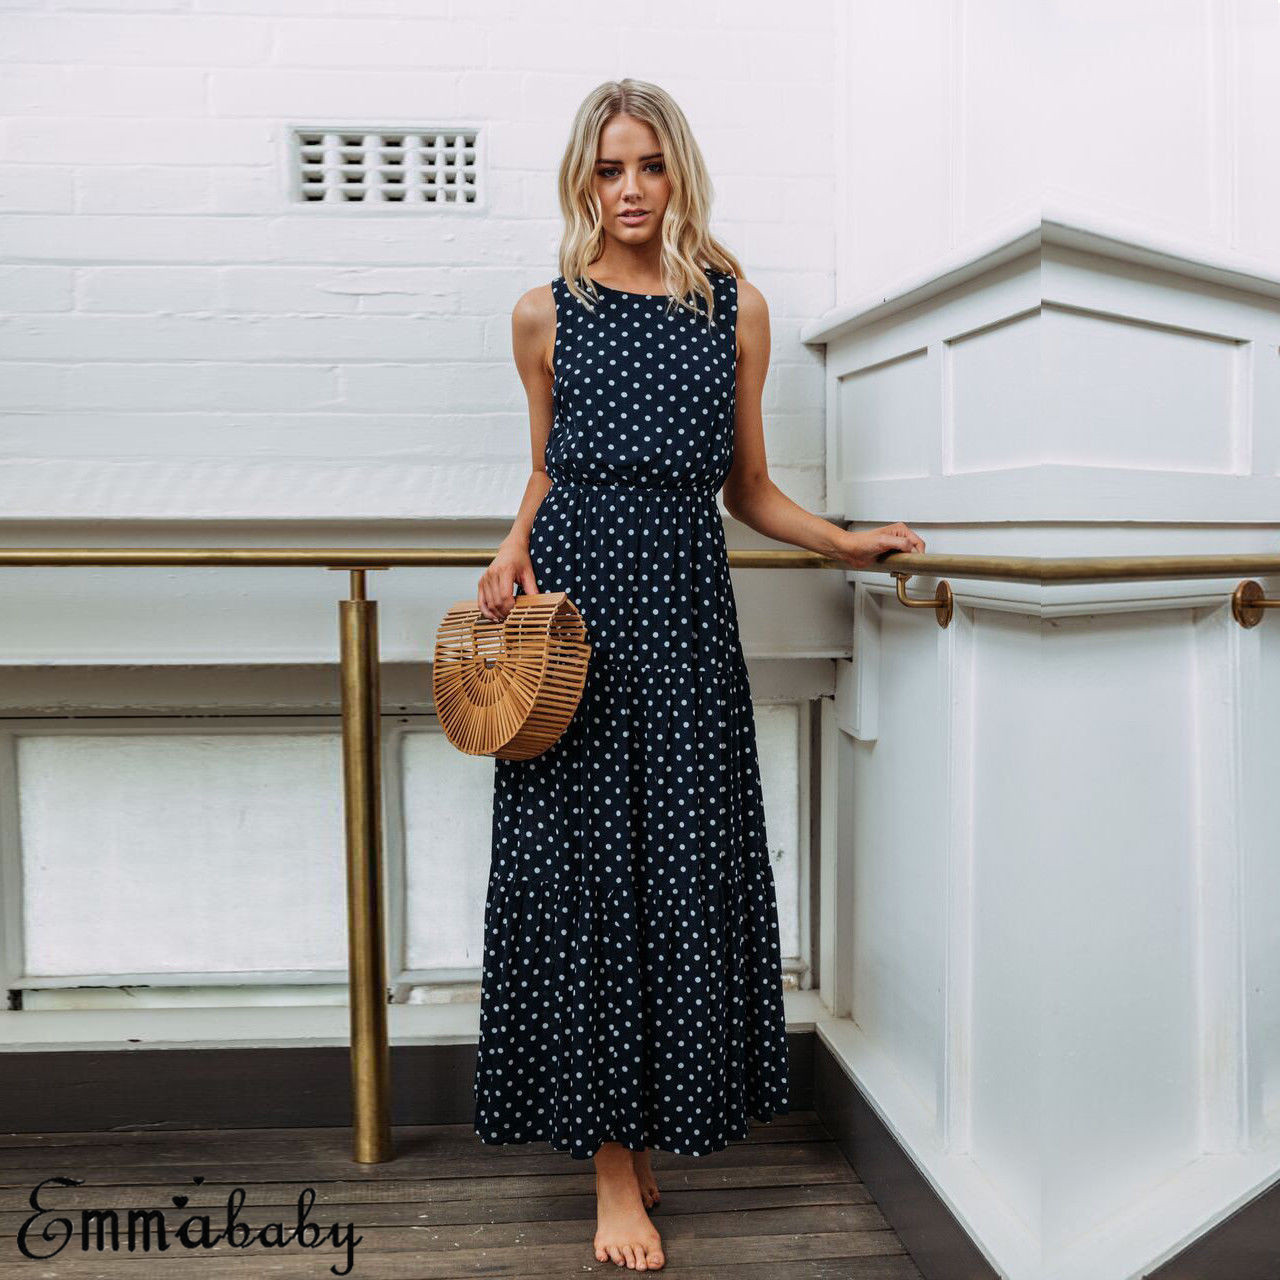 Hfc3b164ecda9427c8ed7a431f45843e1T 2019 Bobo Women Dark Blue Boho Loose Sleeveless Holiday Dot Print Long Maxi Dress Evening Party Beach Dresses Summer Sundress